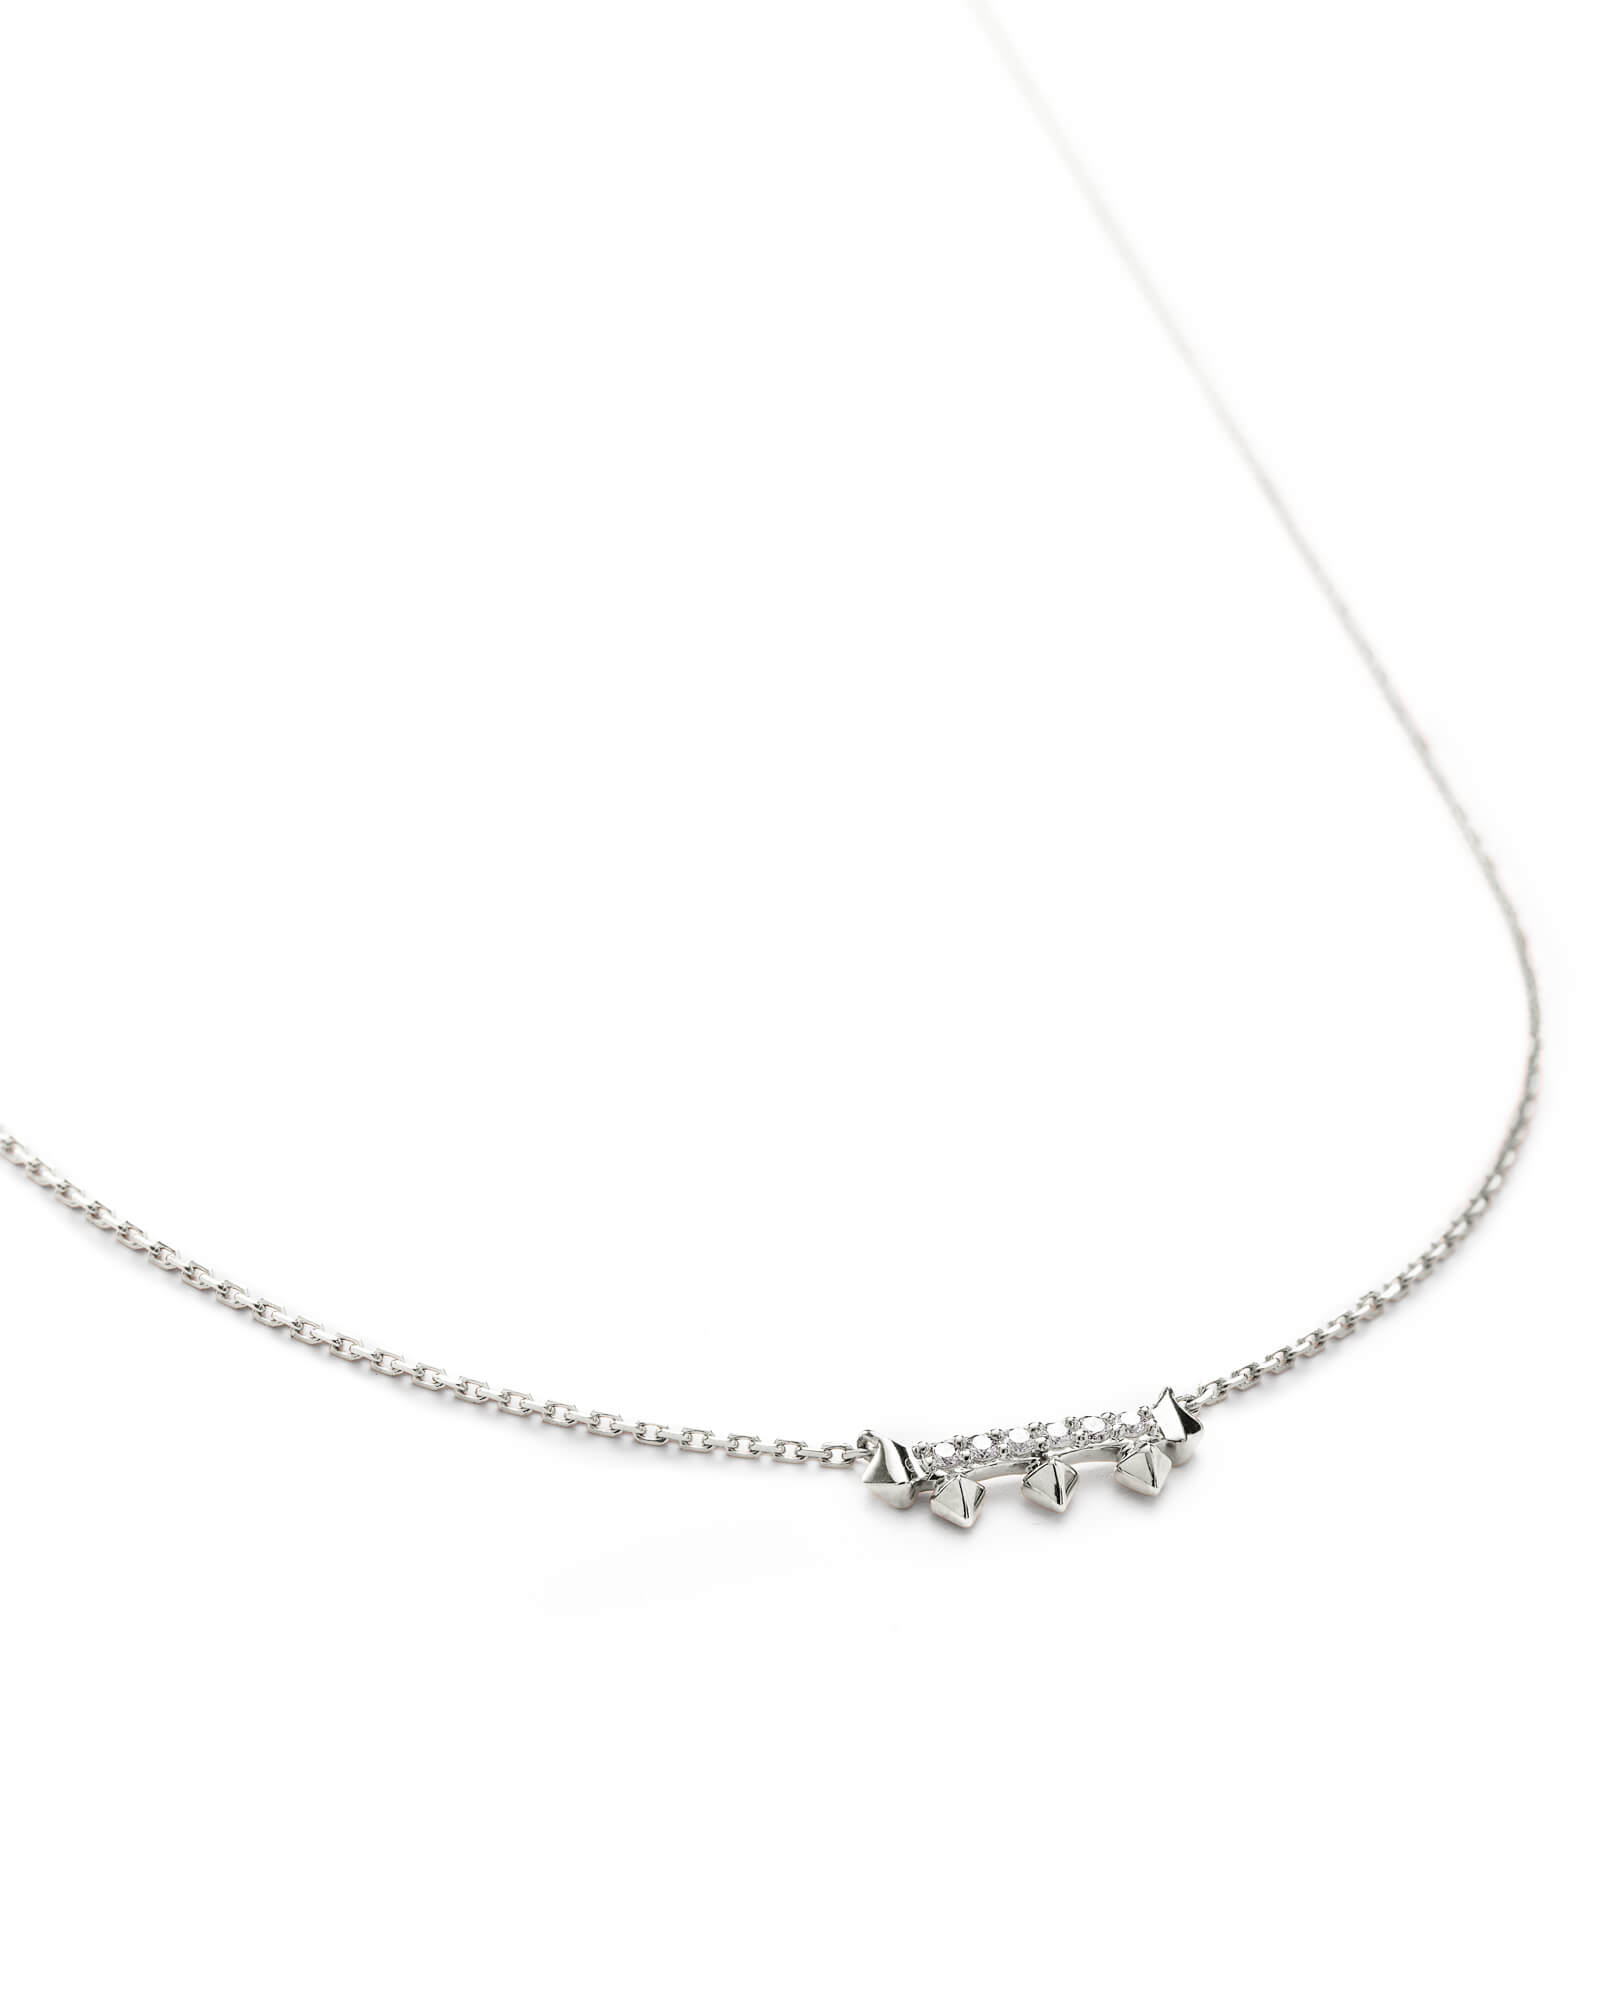 Katy Pendant Necklace in White Diamond and 14k White Gold